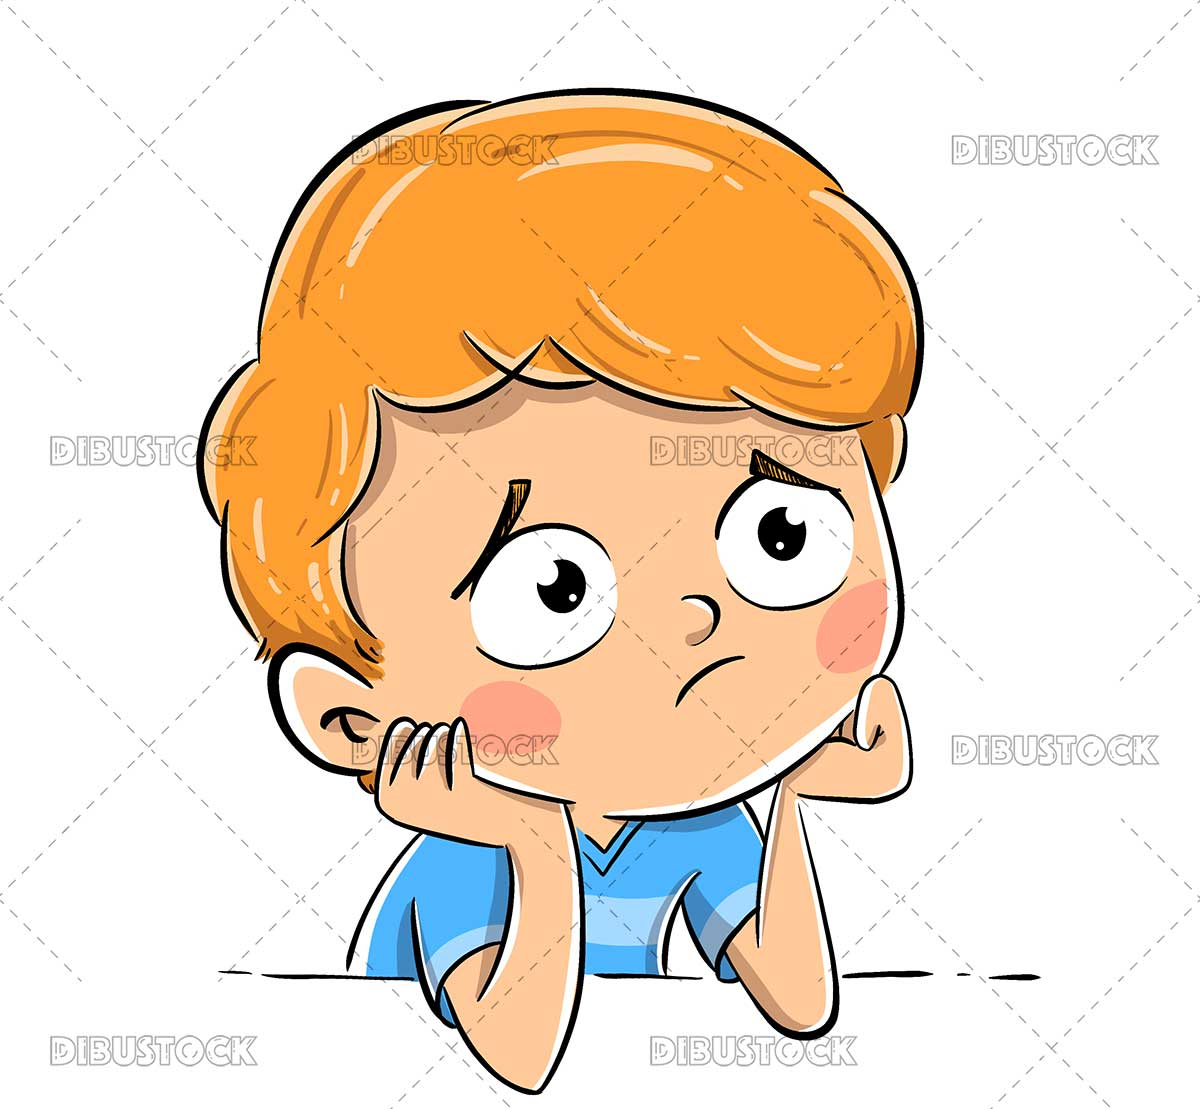 Illustration of a Worried Boy Thinking About Something